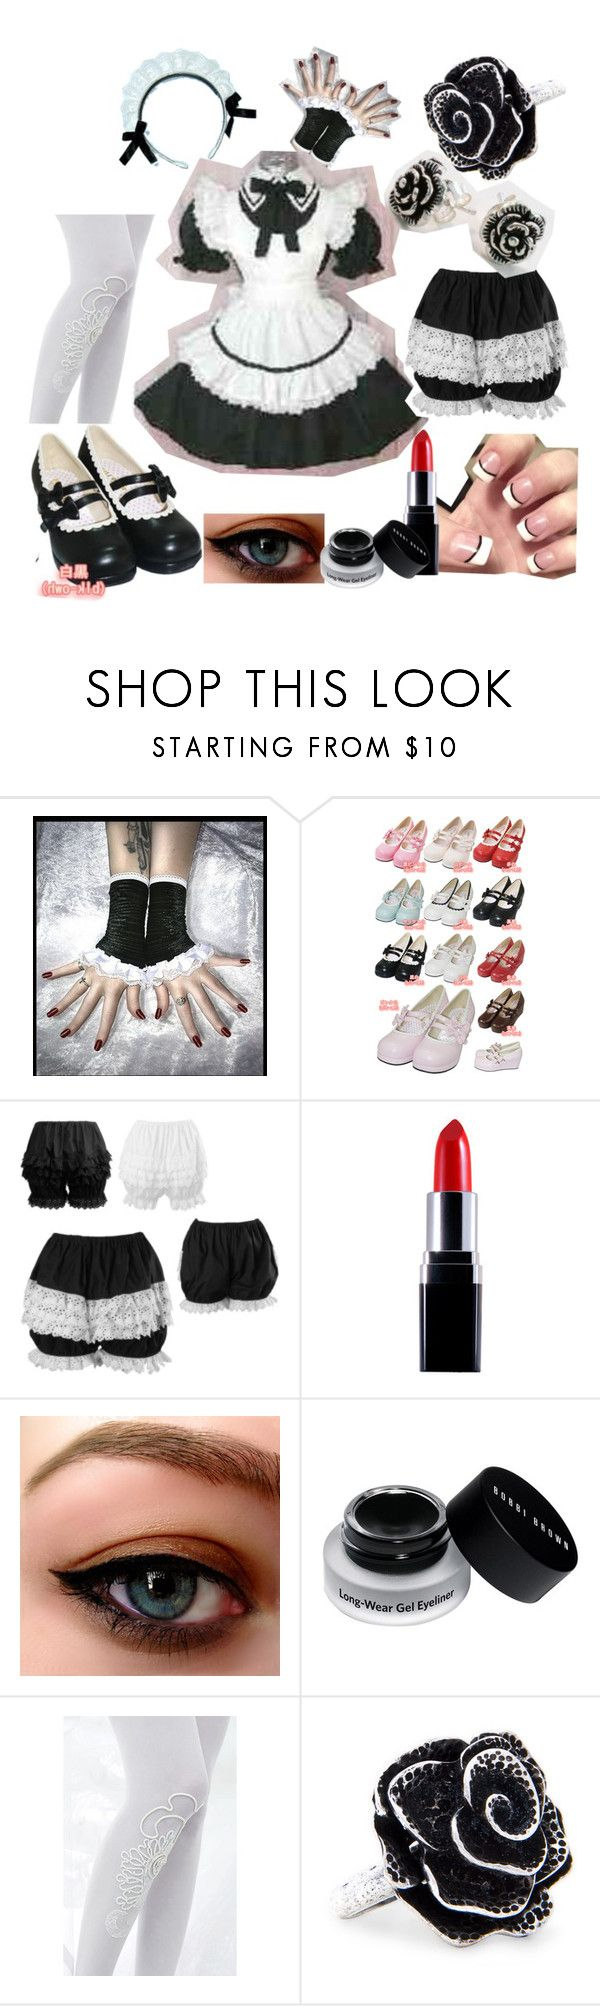 """""""If I Owned A Lolita Cafe-- Uniforms"""" by slave2myfantasy ❤ liked on Polyvore featuring Bodyline, Bobbi Brown Cosmetics, Bebaroque, MANGO, apron, waitress, cafe, uniform, lolita and bodyline"""